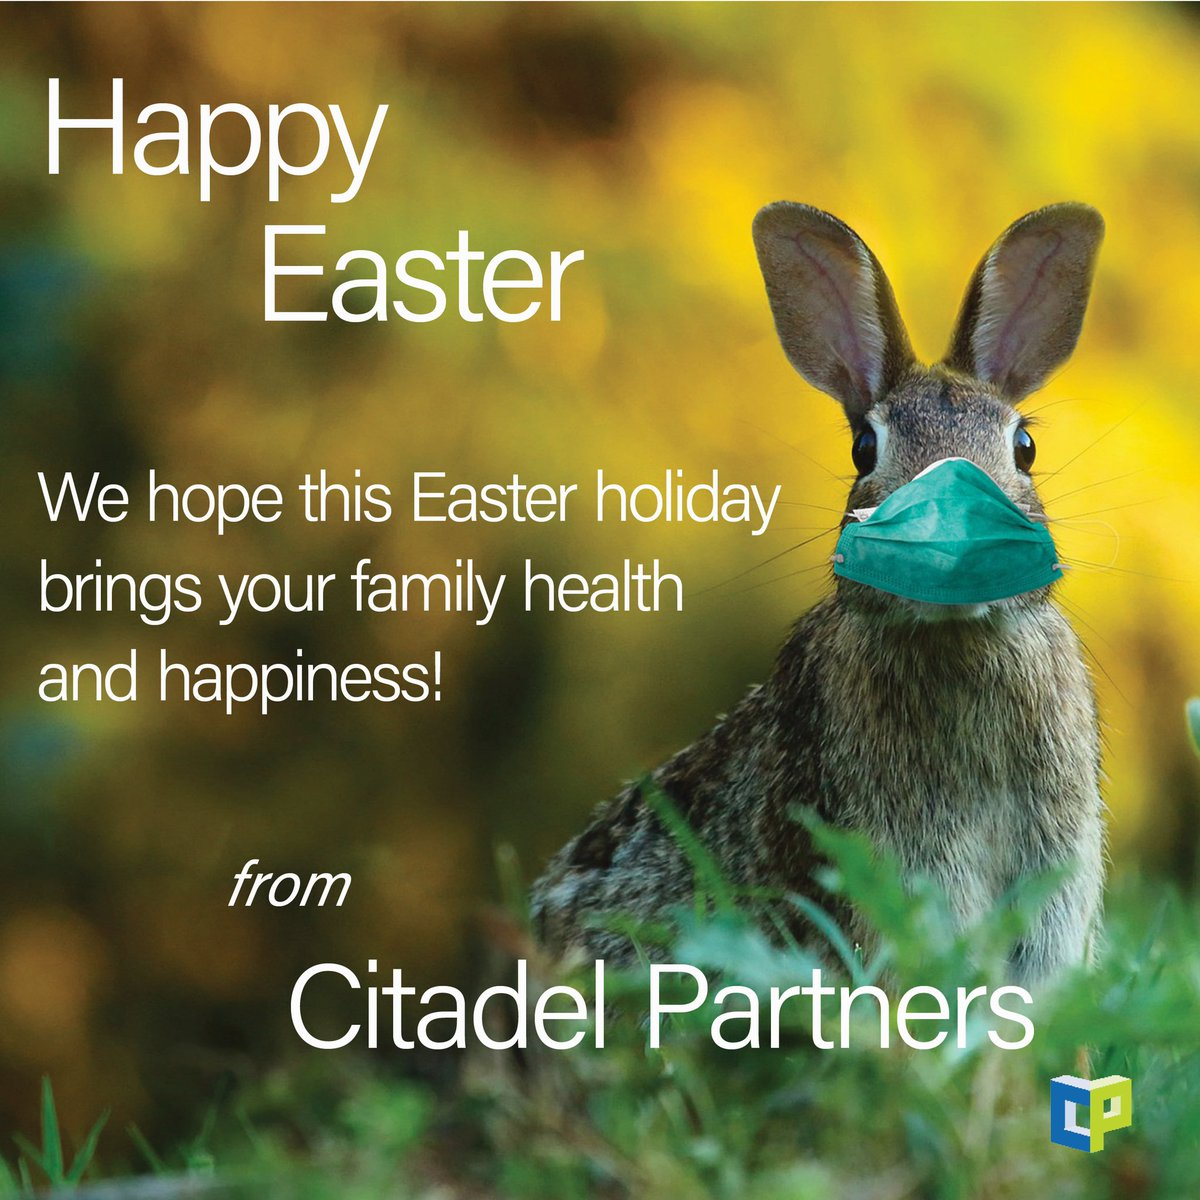 test Twitter Media - Wishing everyone a wonderful Easter weekend!  We hope this Easter holiday brings your family health and happiness.  #CitadelPartners #DallasCommercialRealEstate #Easterweekend #hehasrisen #Family https://t.co/VVnc0DTAlK